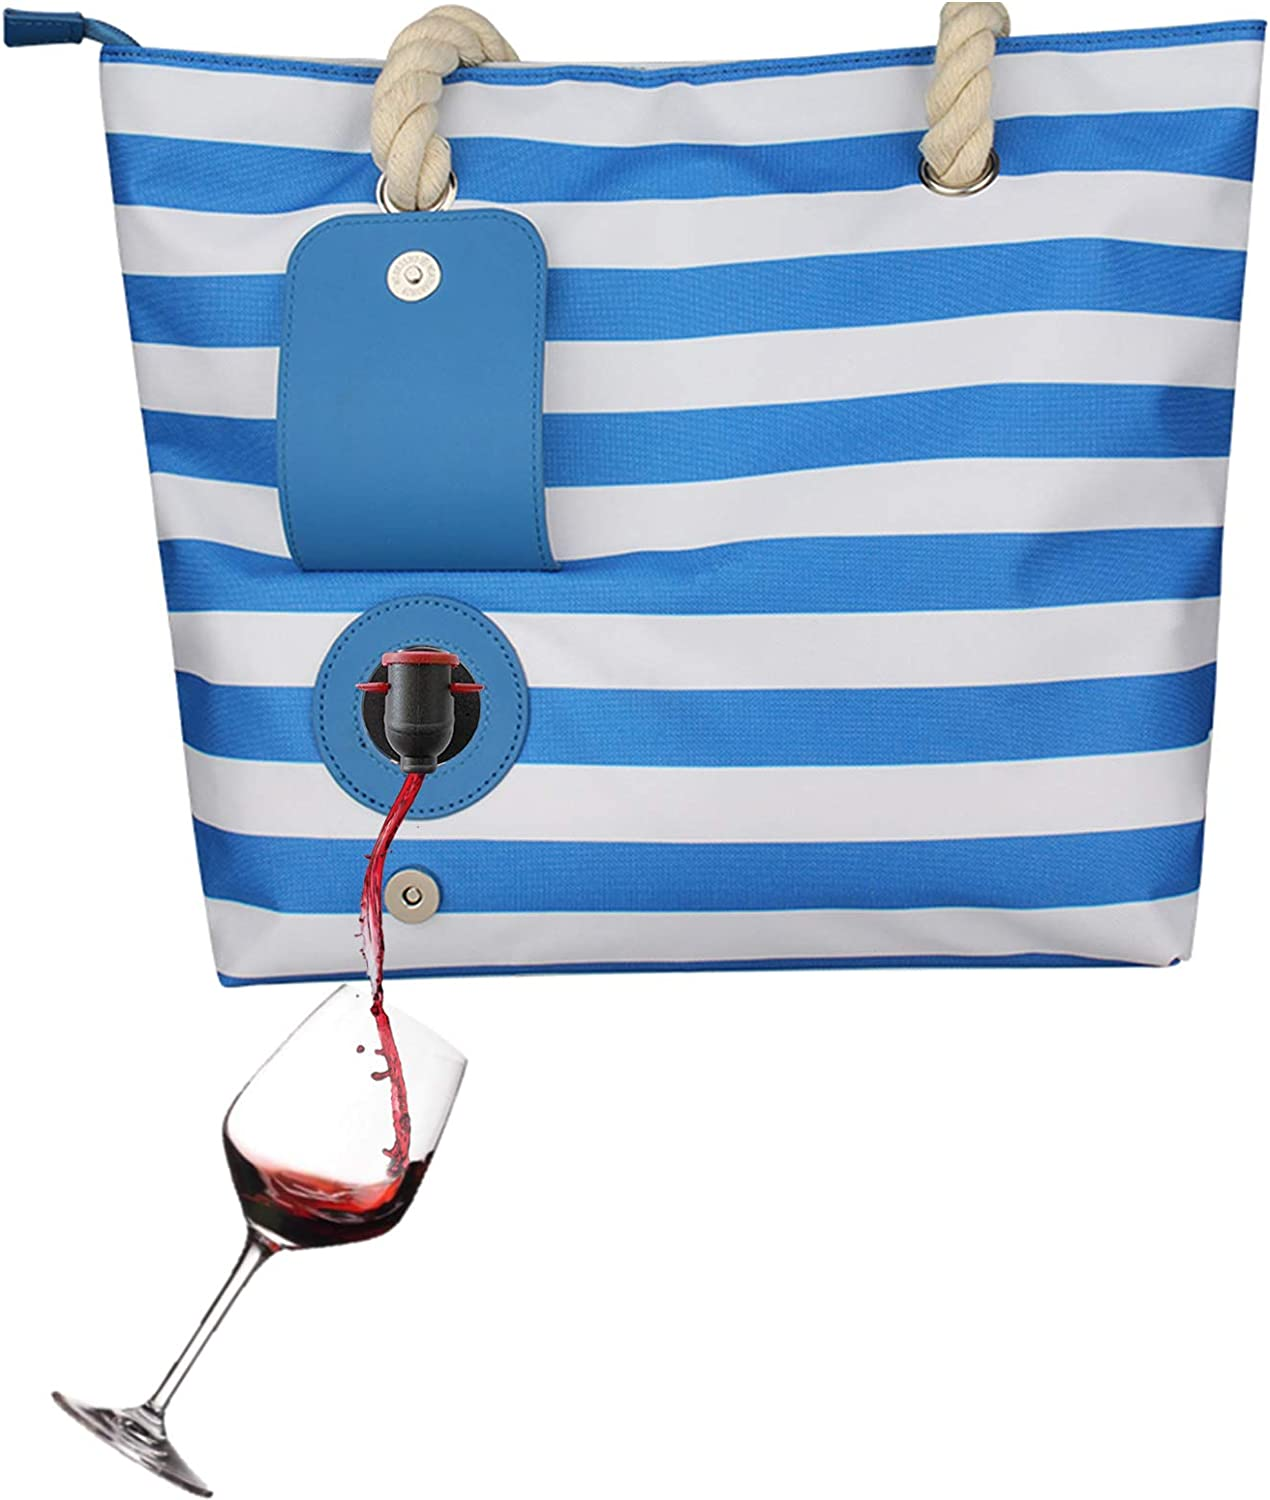 Beach Wine Bag, Casual Canvas Wine Tote Bag with Wine Bladder and Hidden Dispenser, Beach Tote Bag with Insulation Compartment Holds 2 Bottles of Wine (blue)